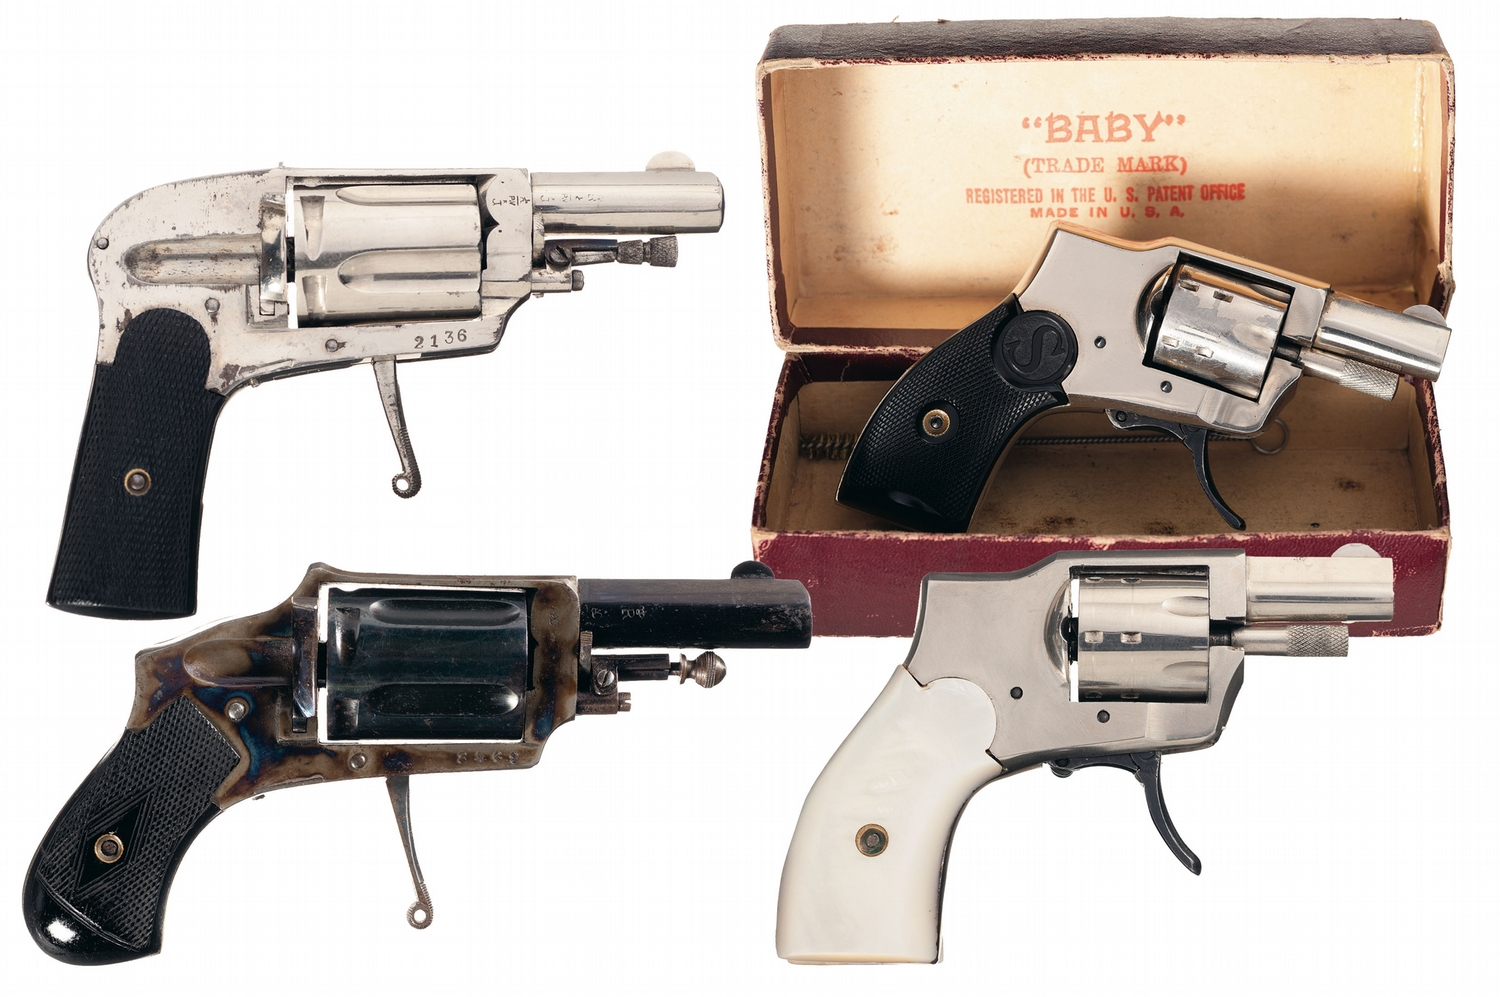 Collector's Lot of Four Baby Hammerless Revolvers -A) Browning Baby  Hammerless Revolver